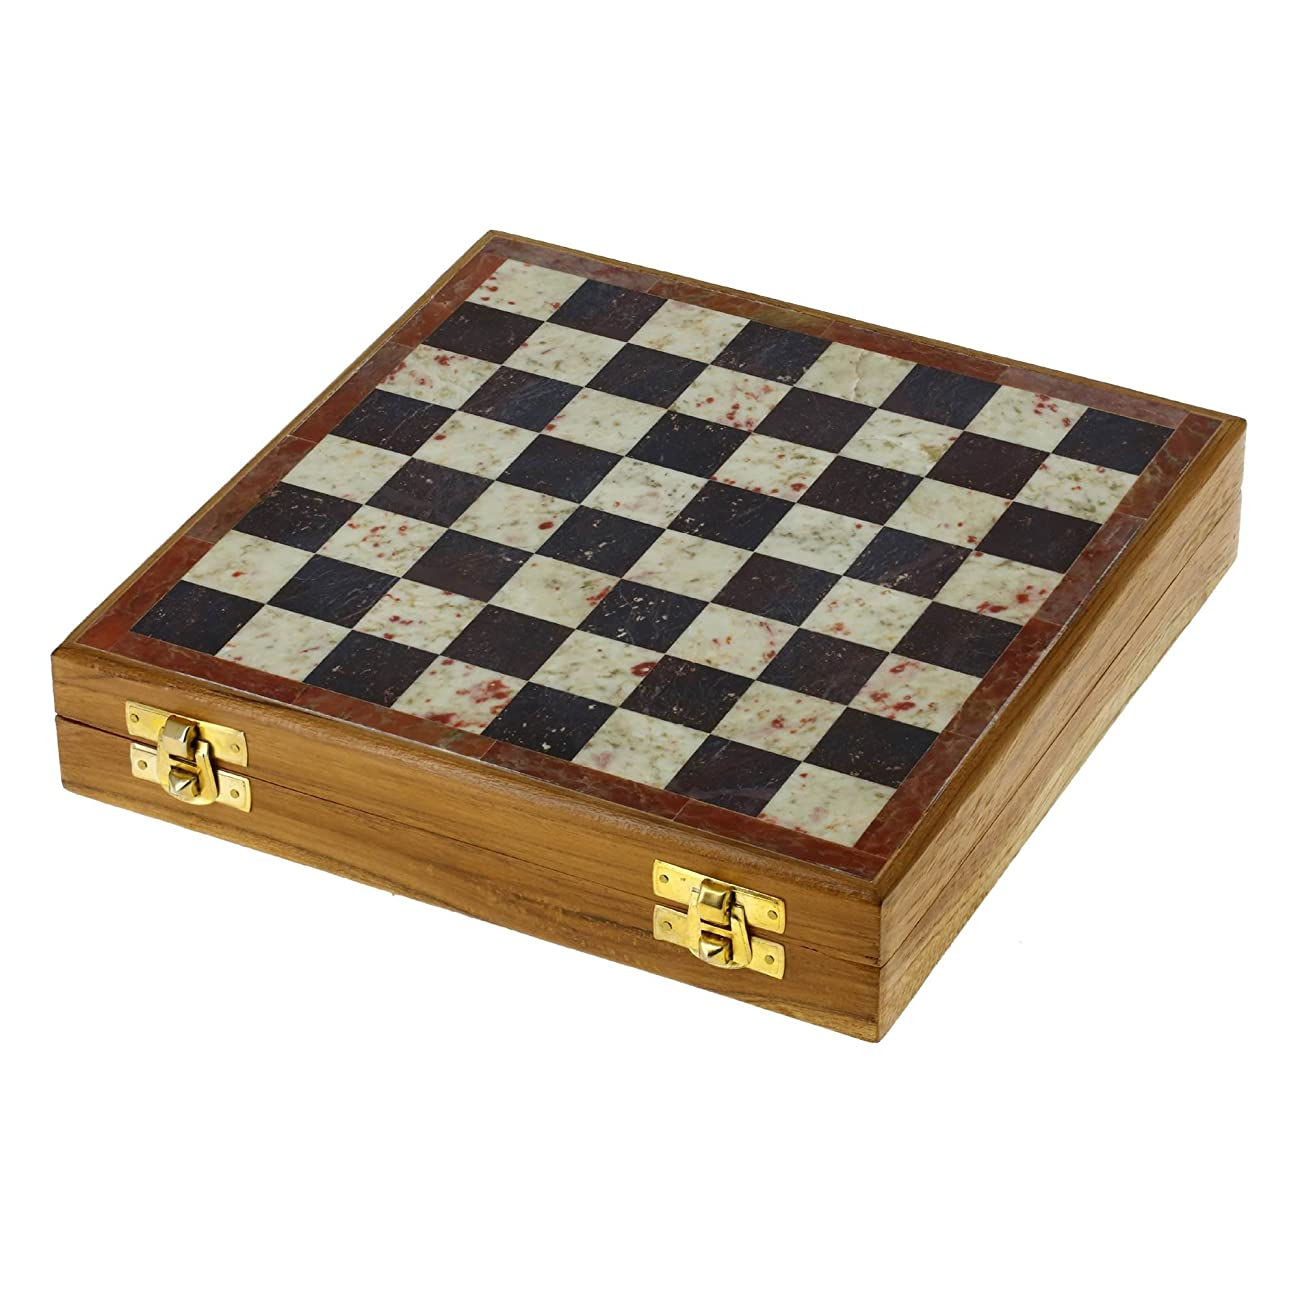 ShalinIndia Rajasthan Stone Art Unique Chess Sets and Board -Indian Handmade Unique Gifts -Size 8X8 Inches 3